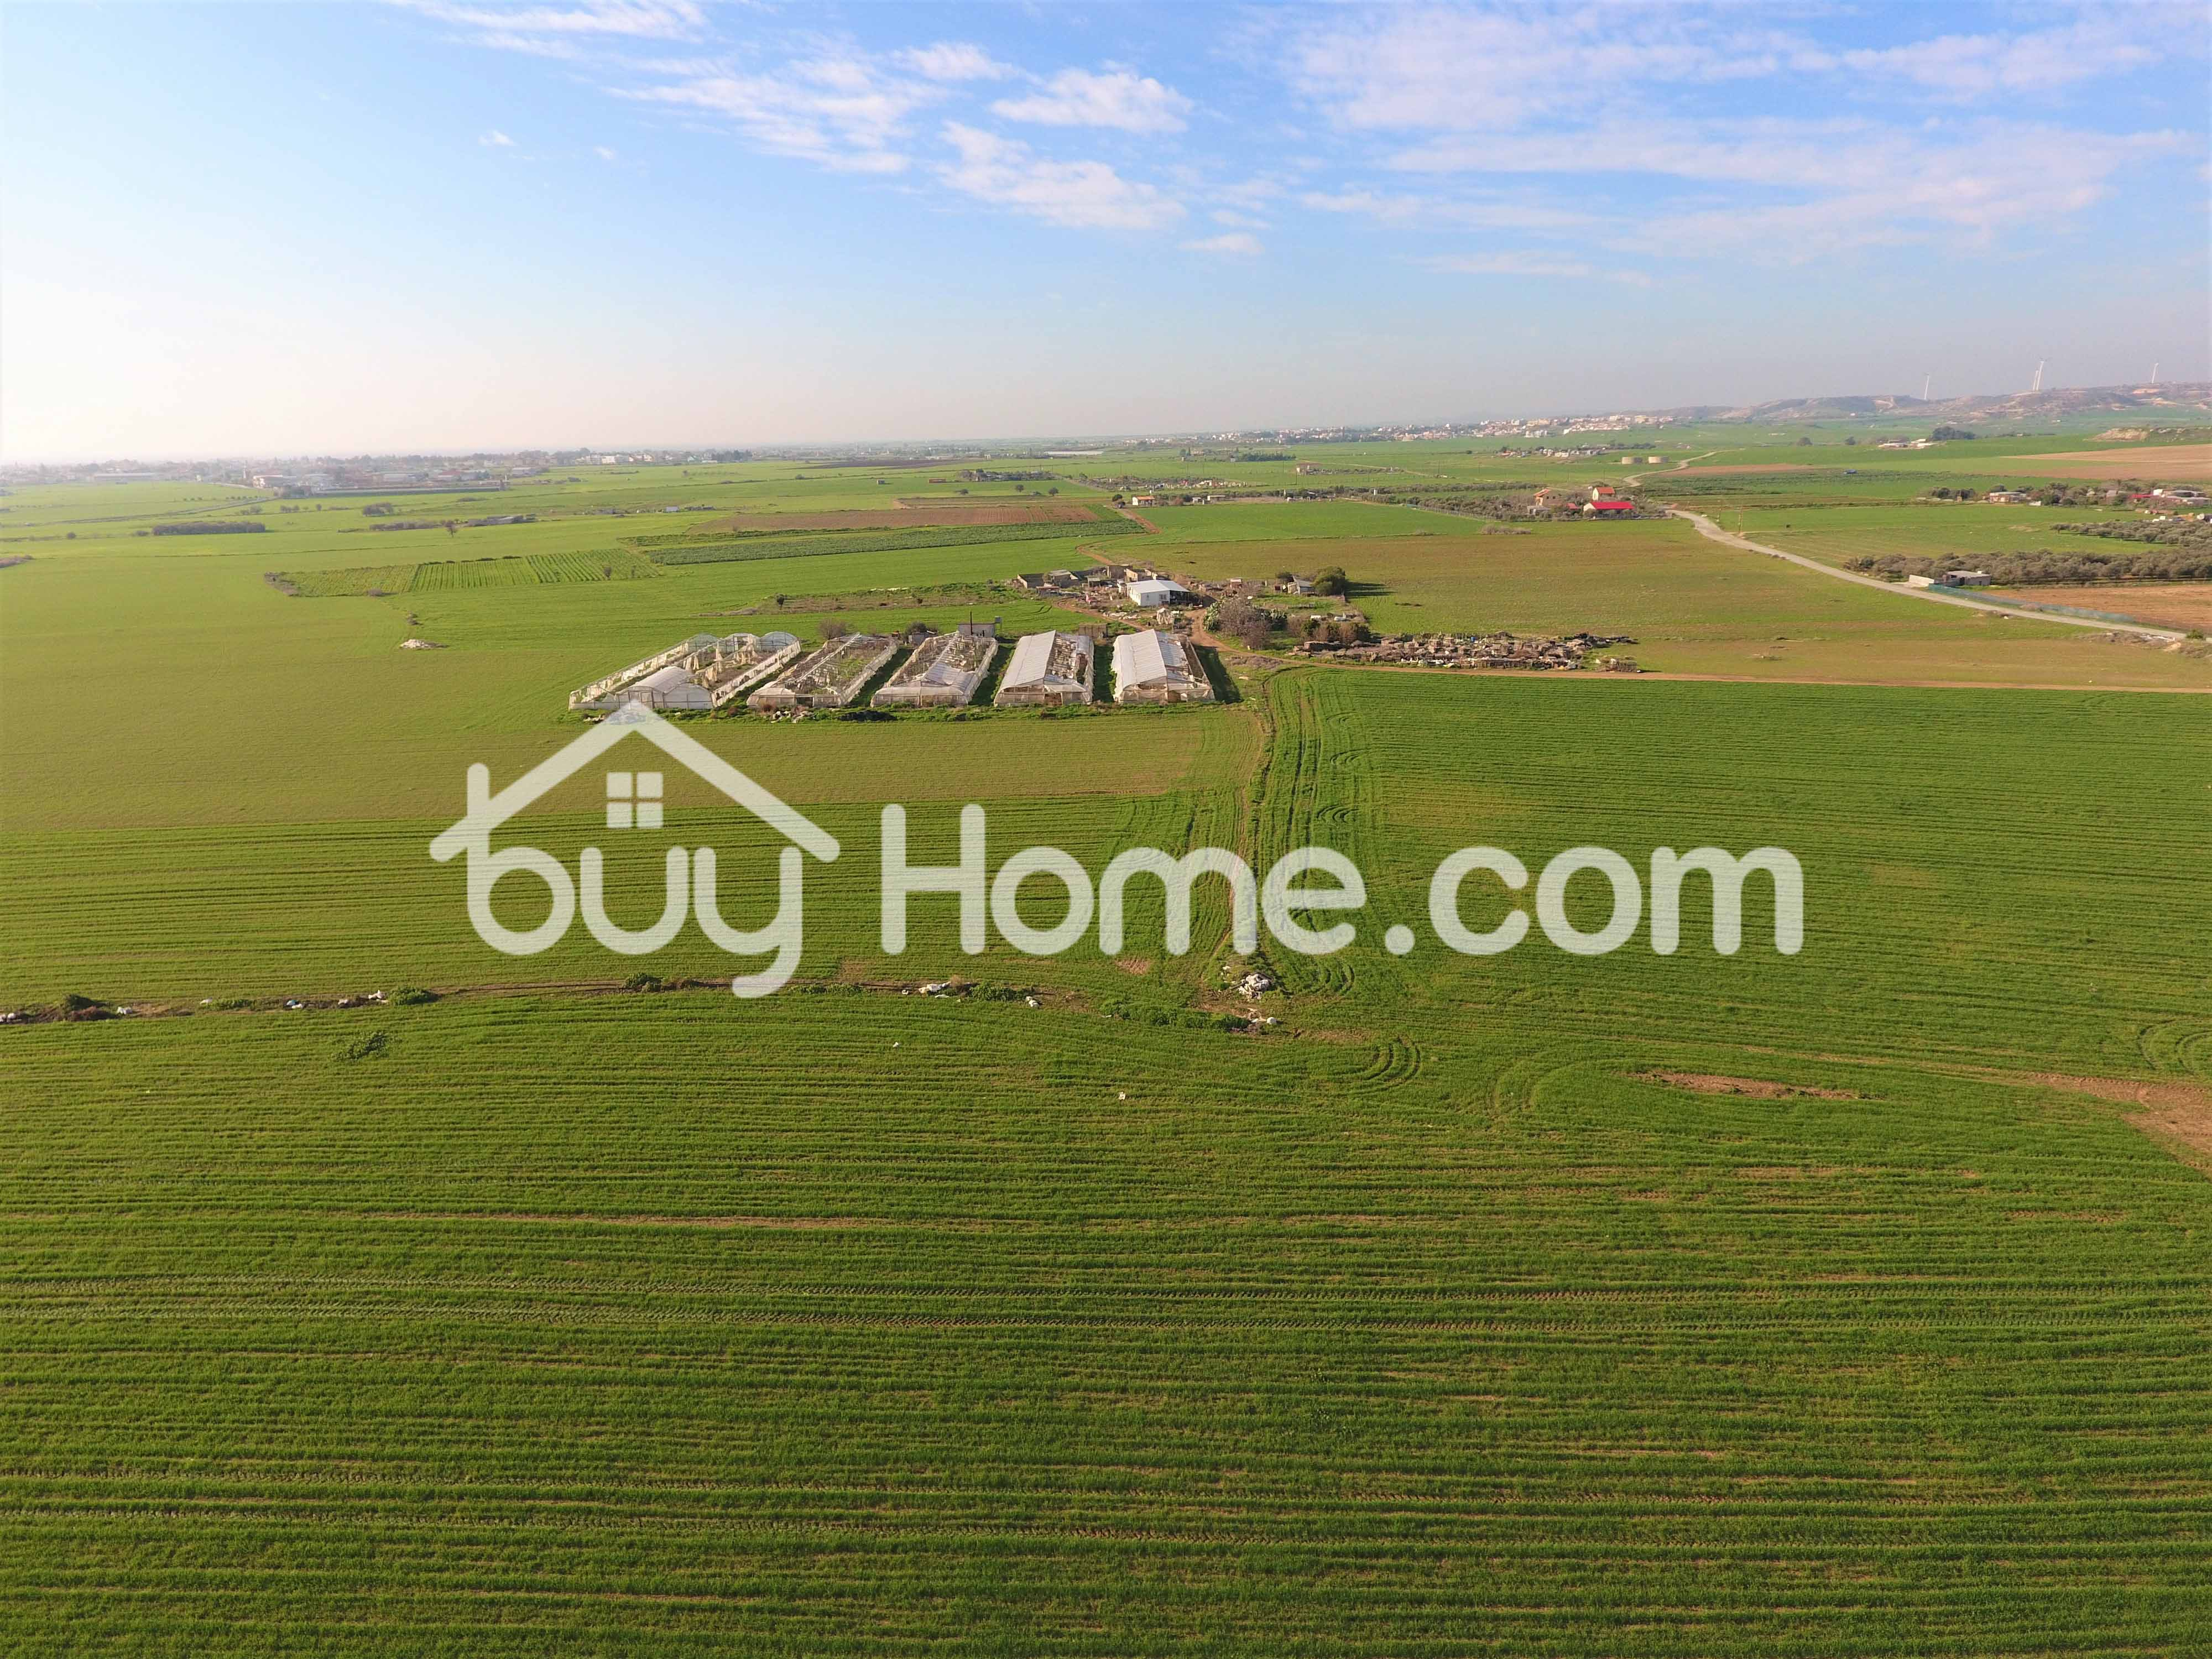 Land Investment Dromolaxia | BuyHome